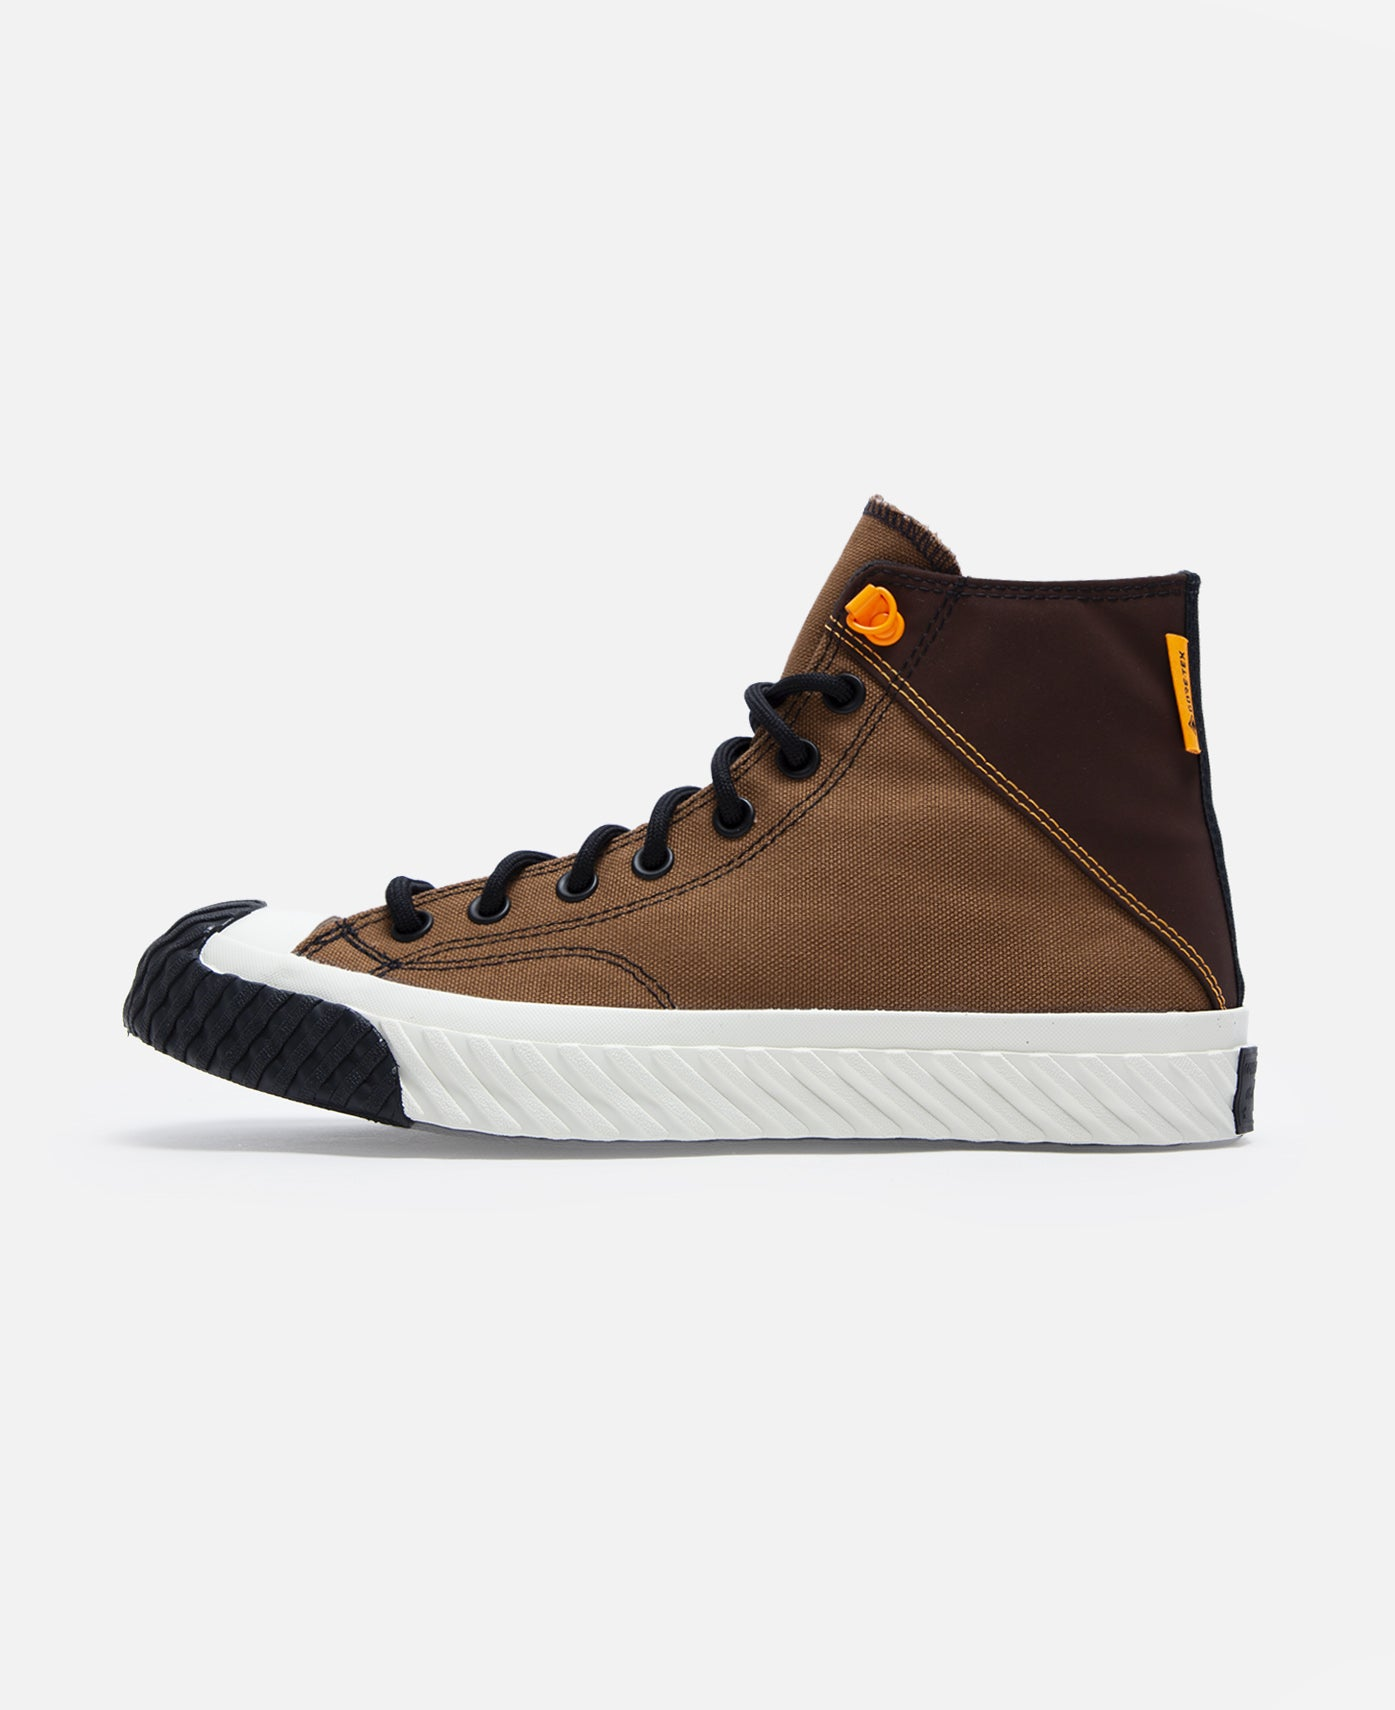 Chuck 70 Bosey GTX HI (Brown)